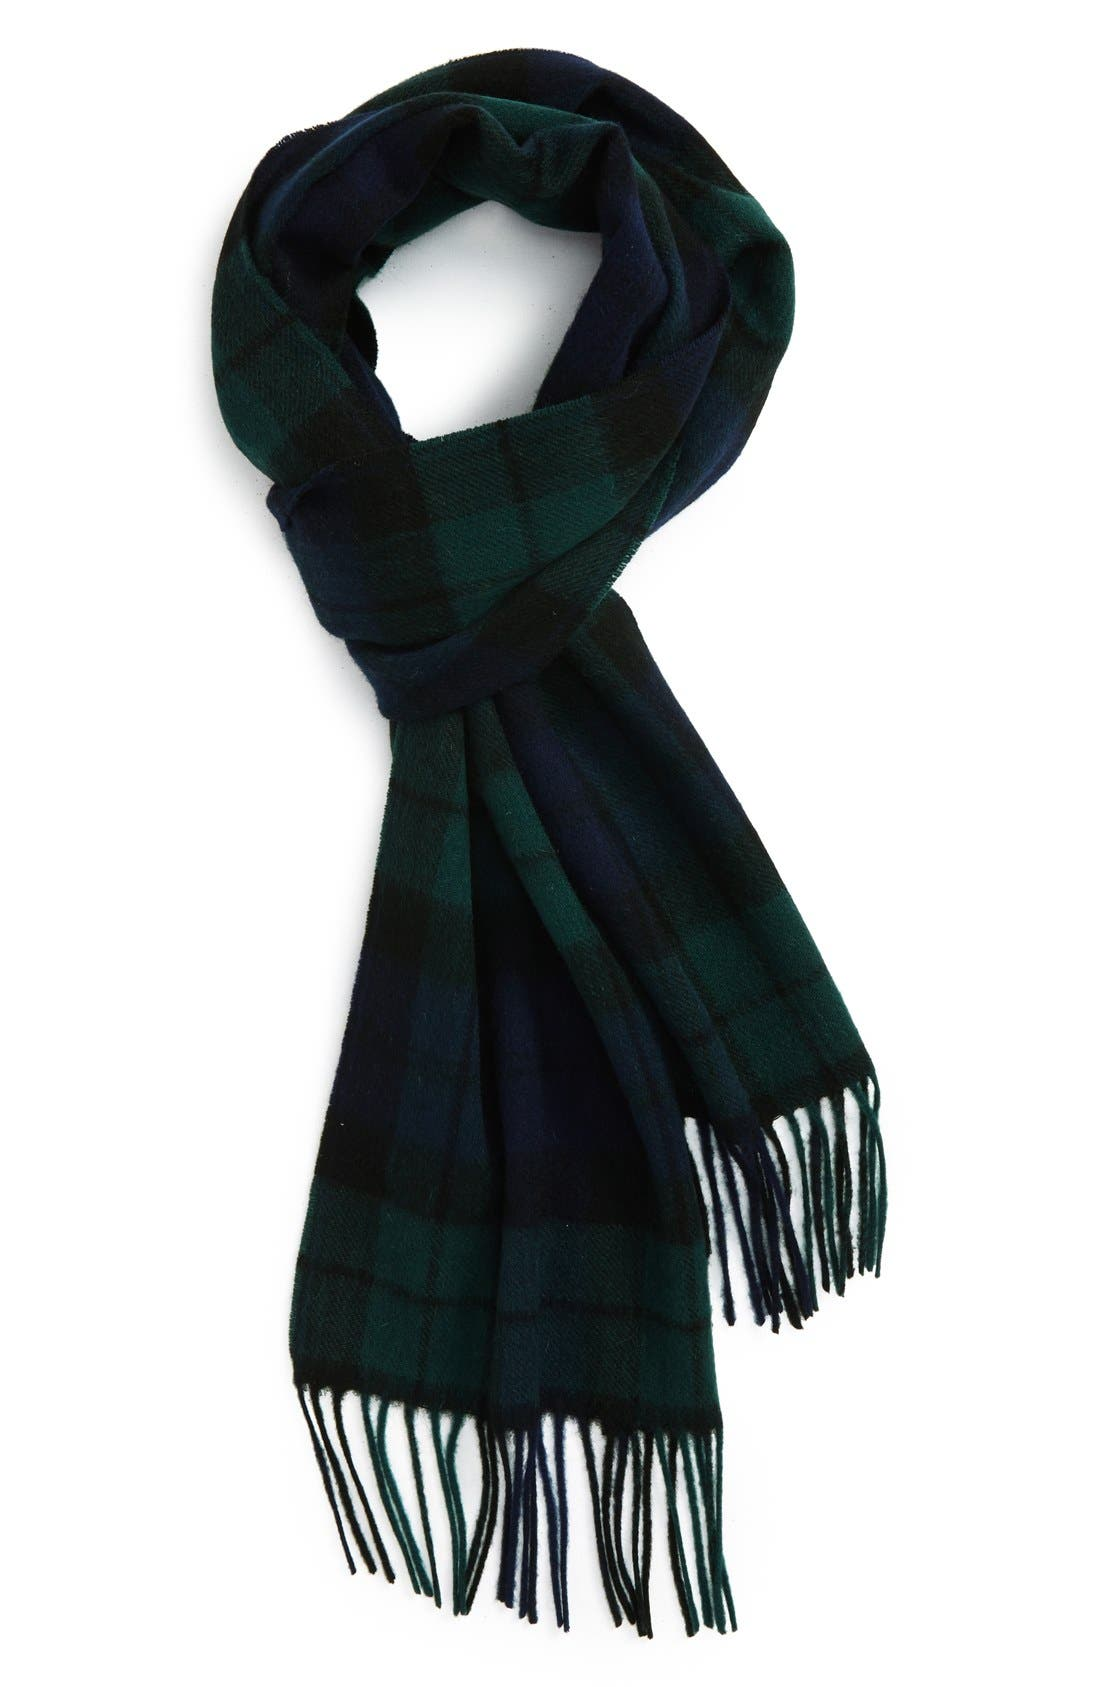 New Check Lambswool & Cashmere Scarf,                         Main,                         color, BLACK WATCH